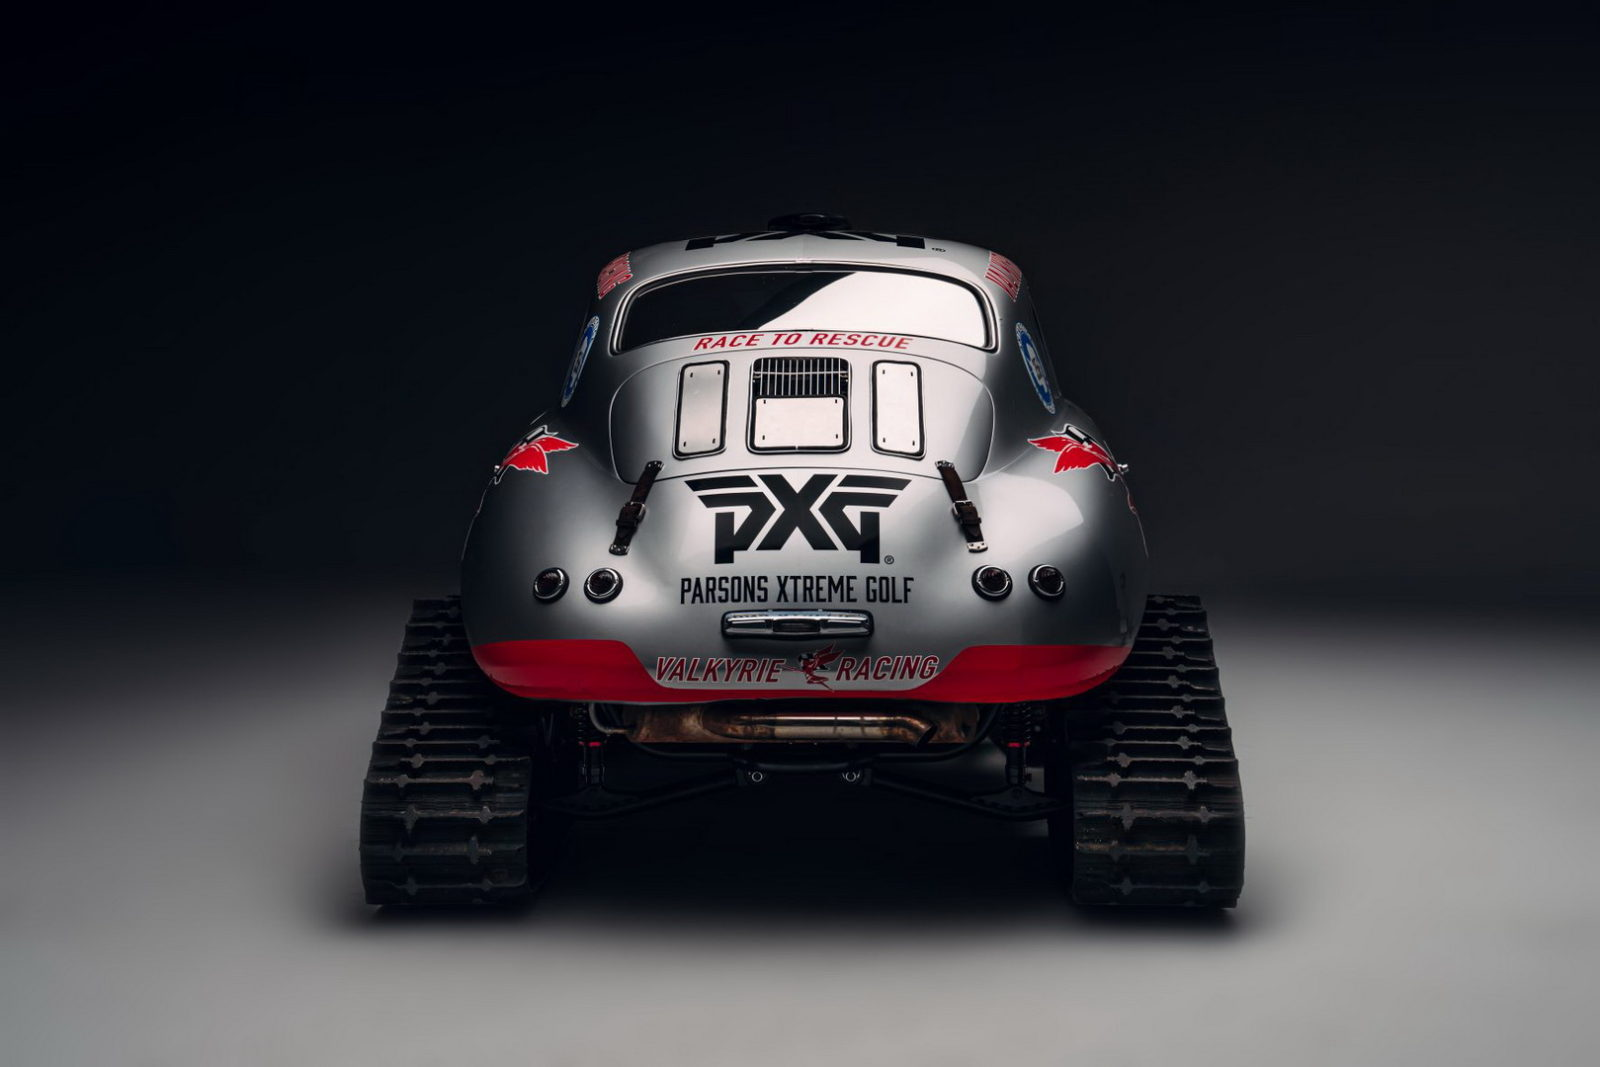 valkyrie-racing's-porsche-356-is-prepped-to-conquer-antarctica,-becomes-a-snow-beast